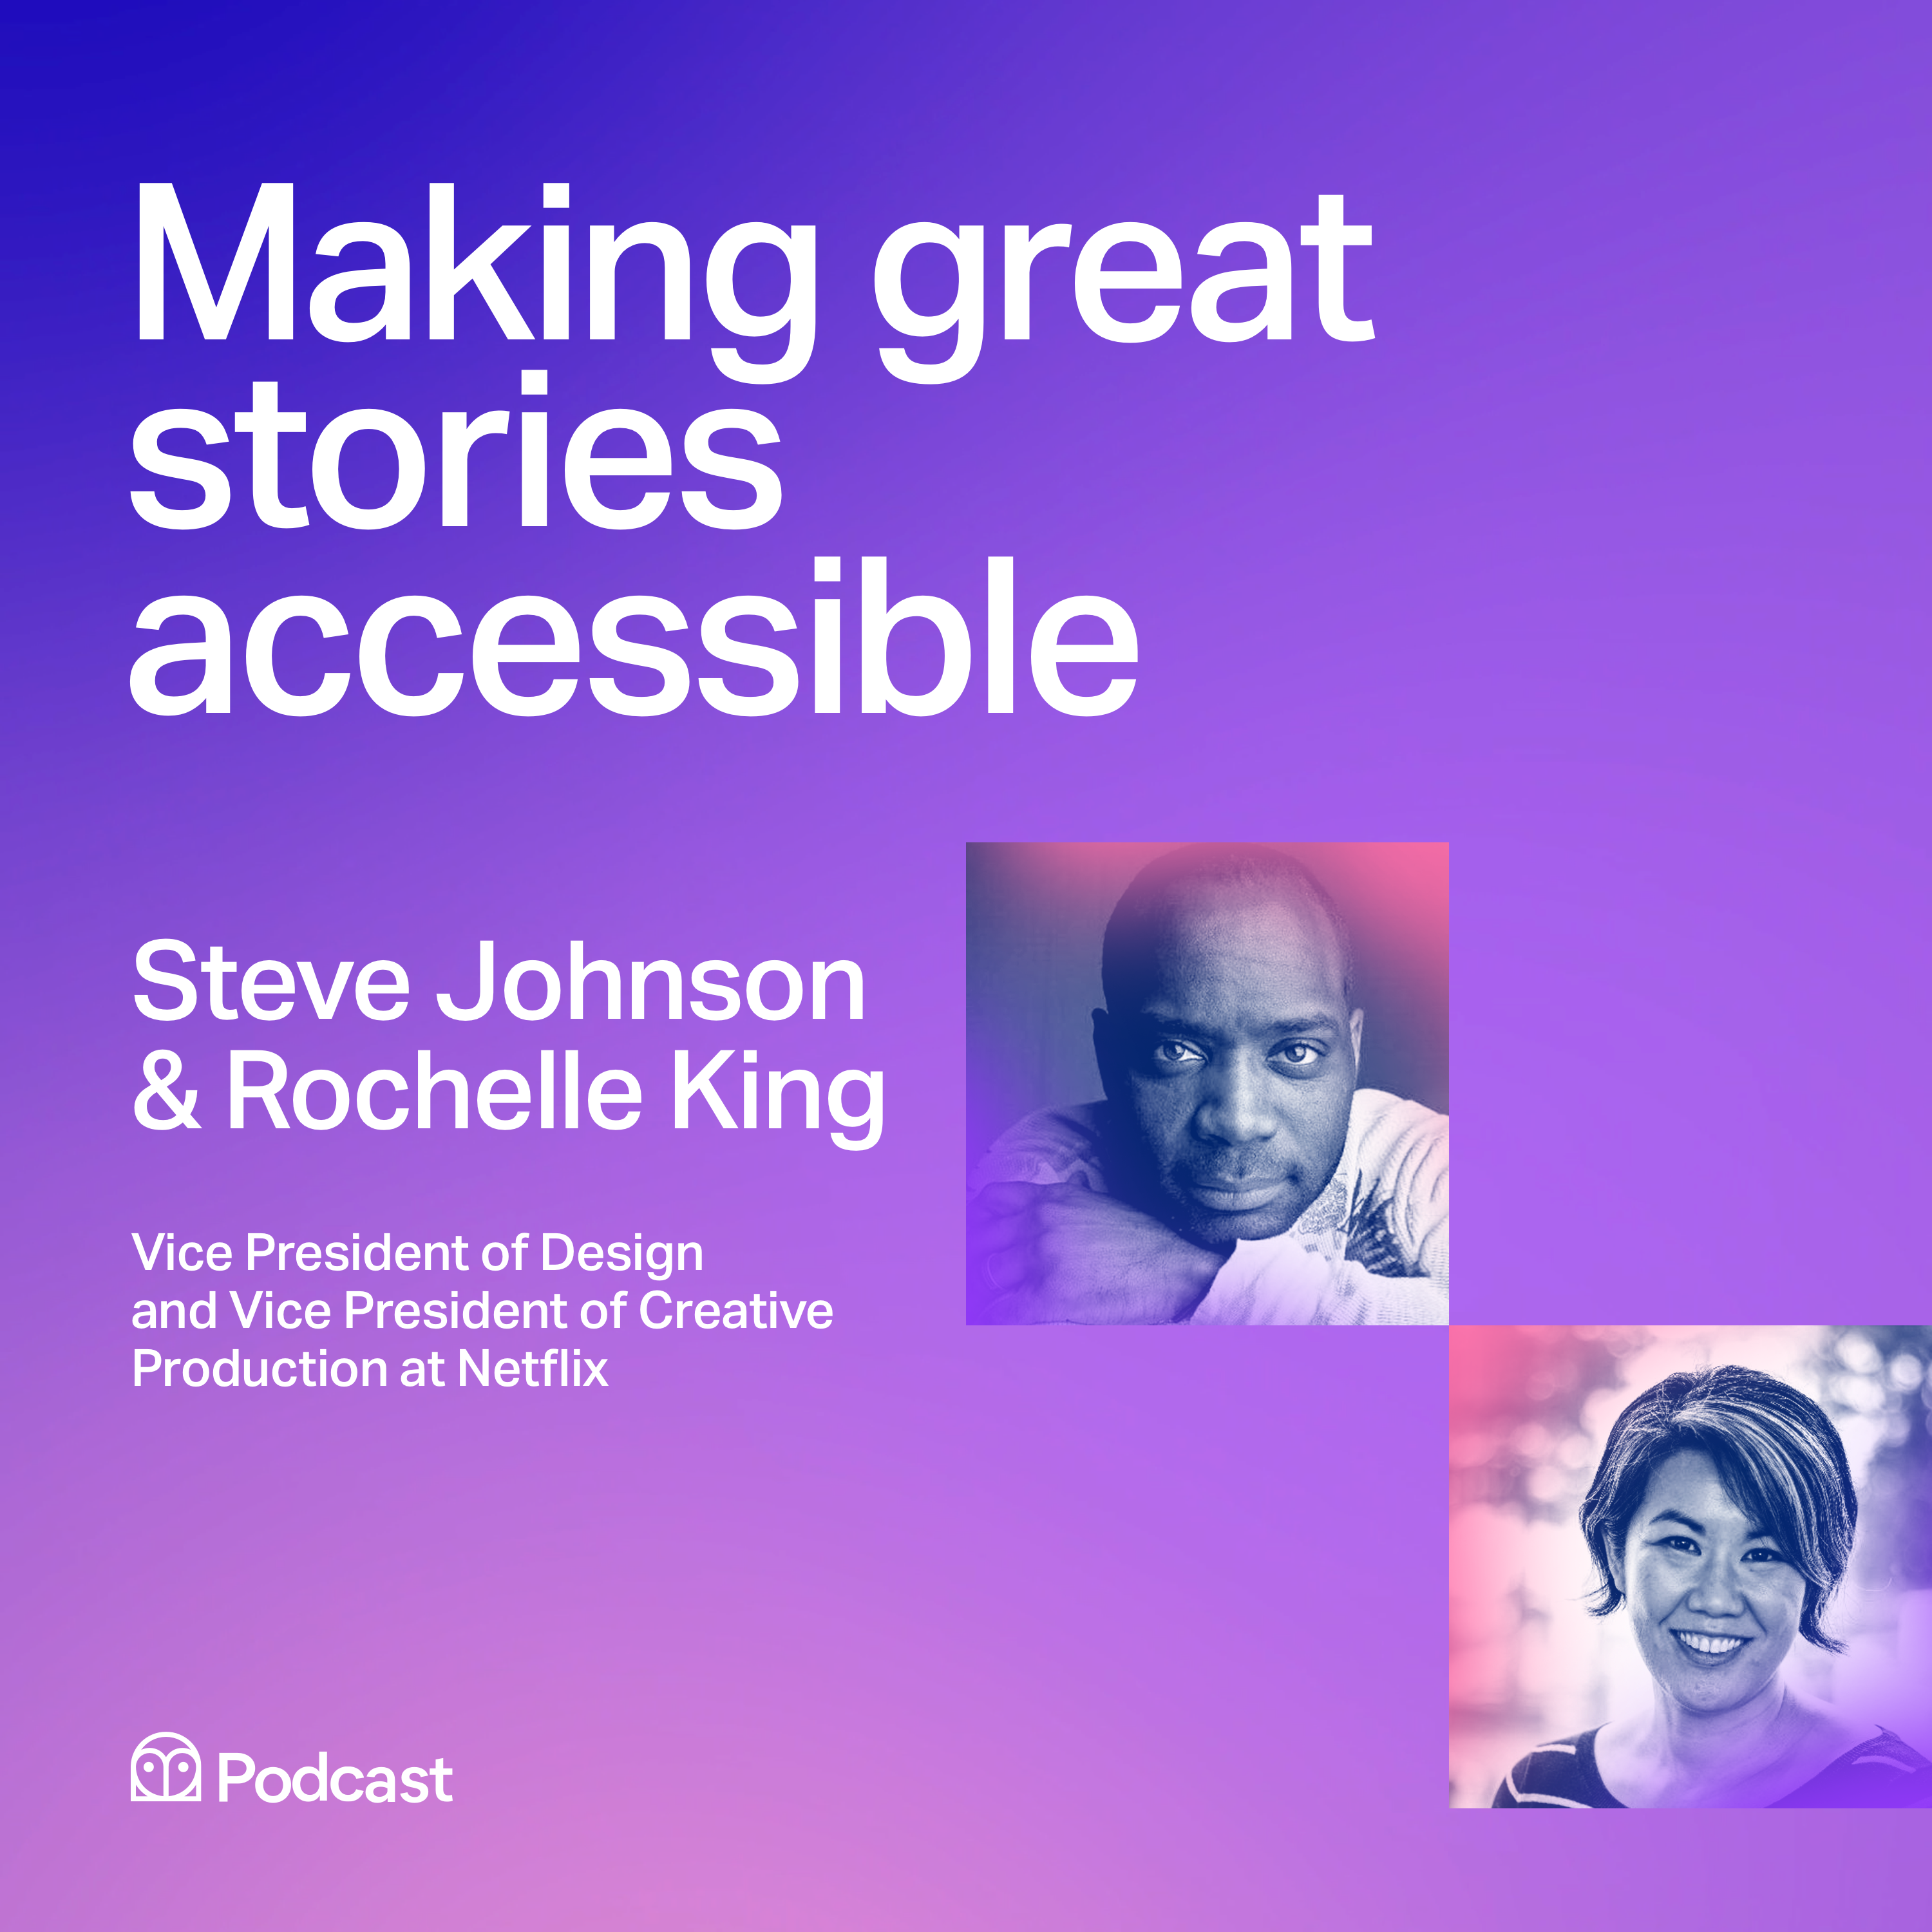 Netflix's Steve Johnson and Rochelle King: Making great stories accessible